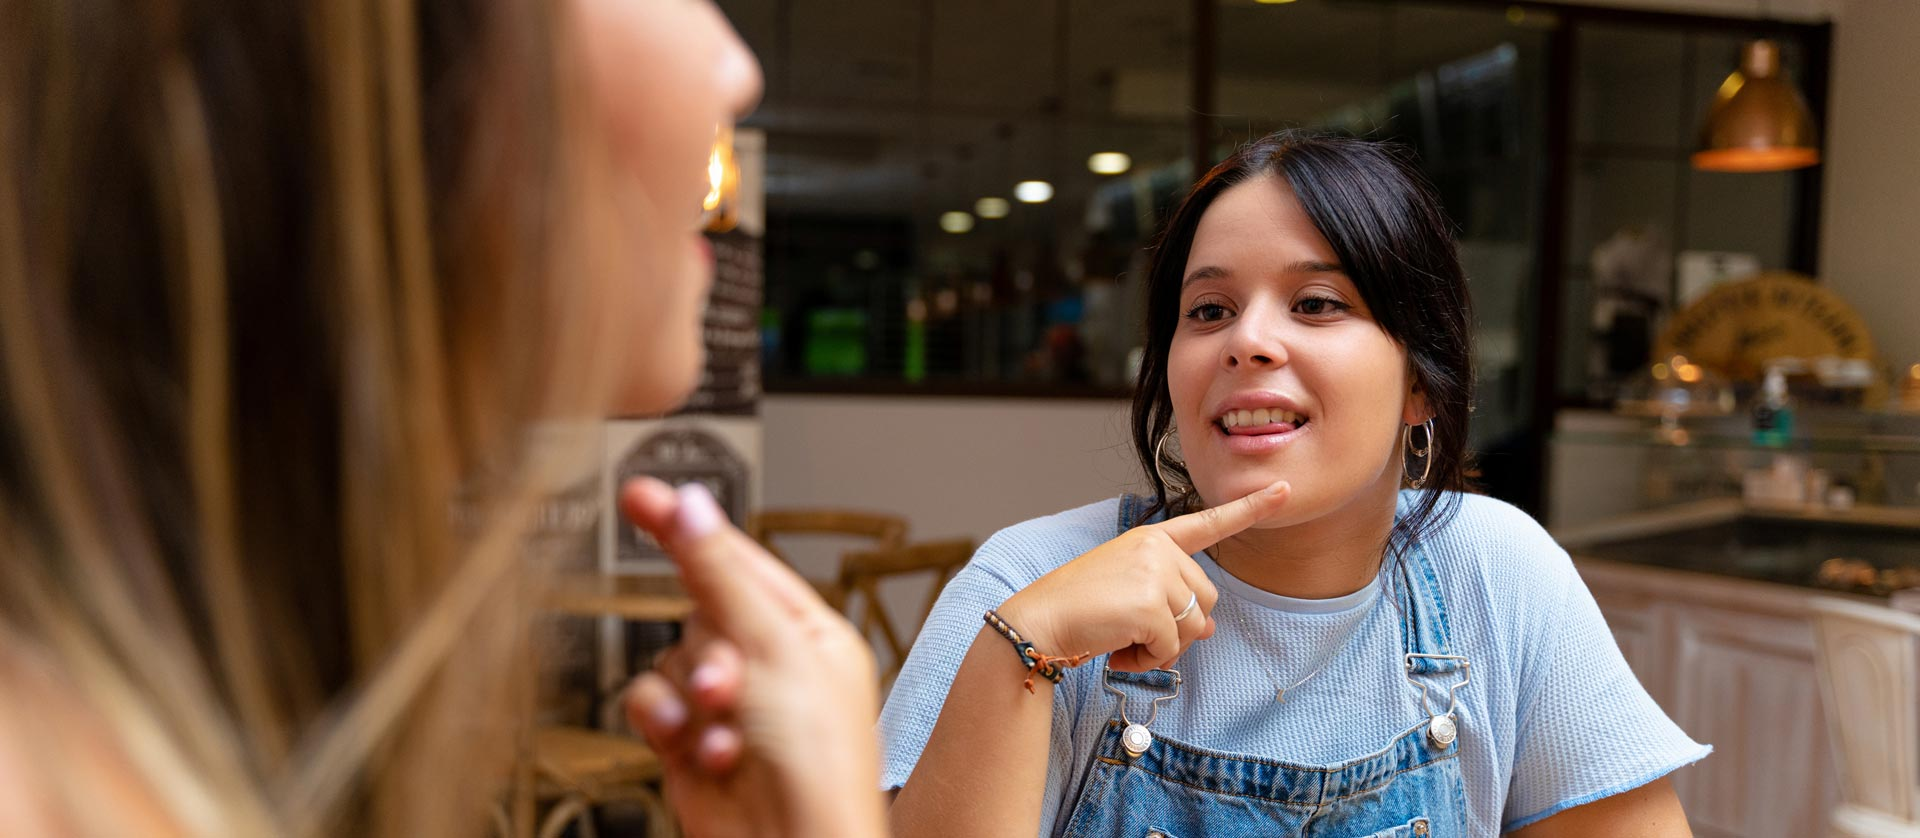 Two young women at a cafe, conversing in sign language.